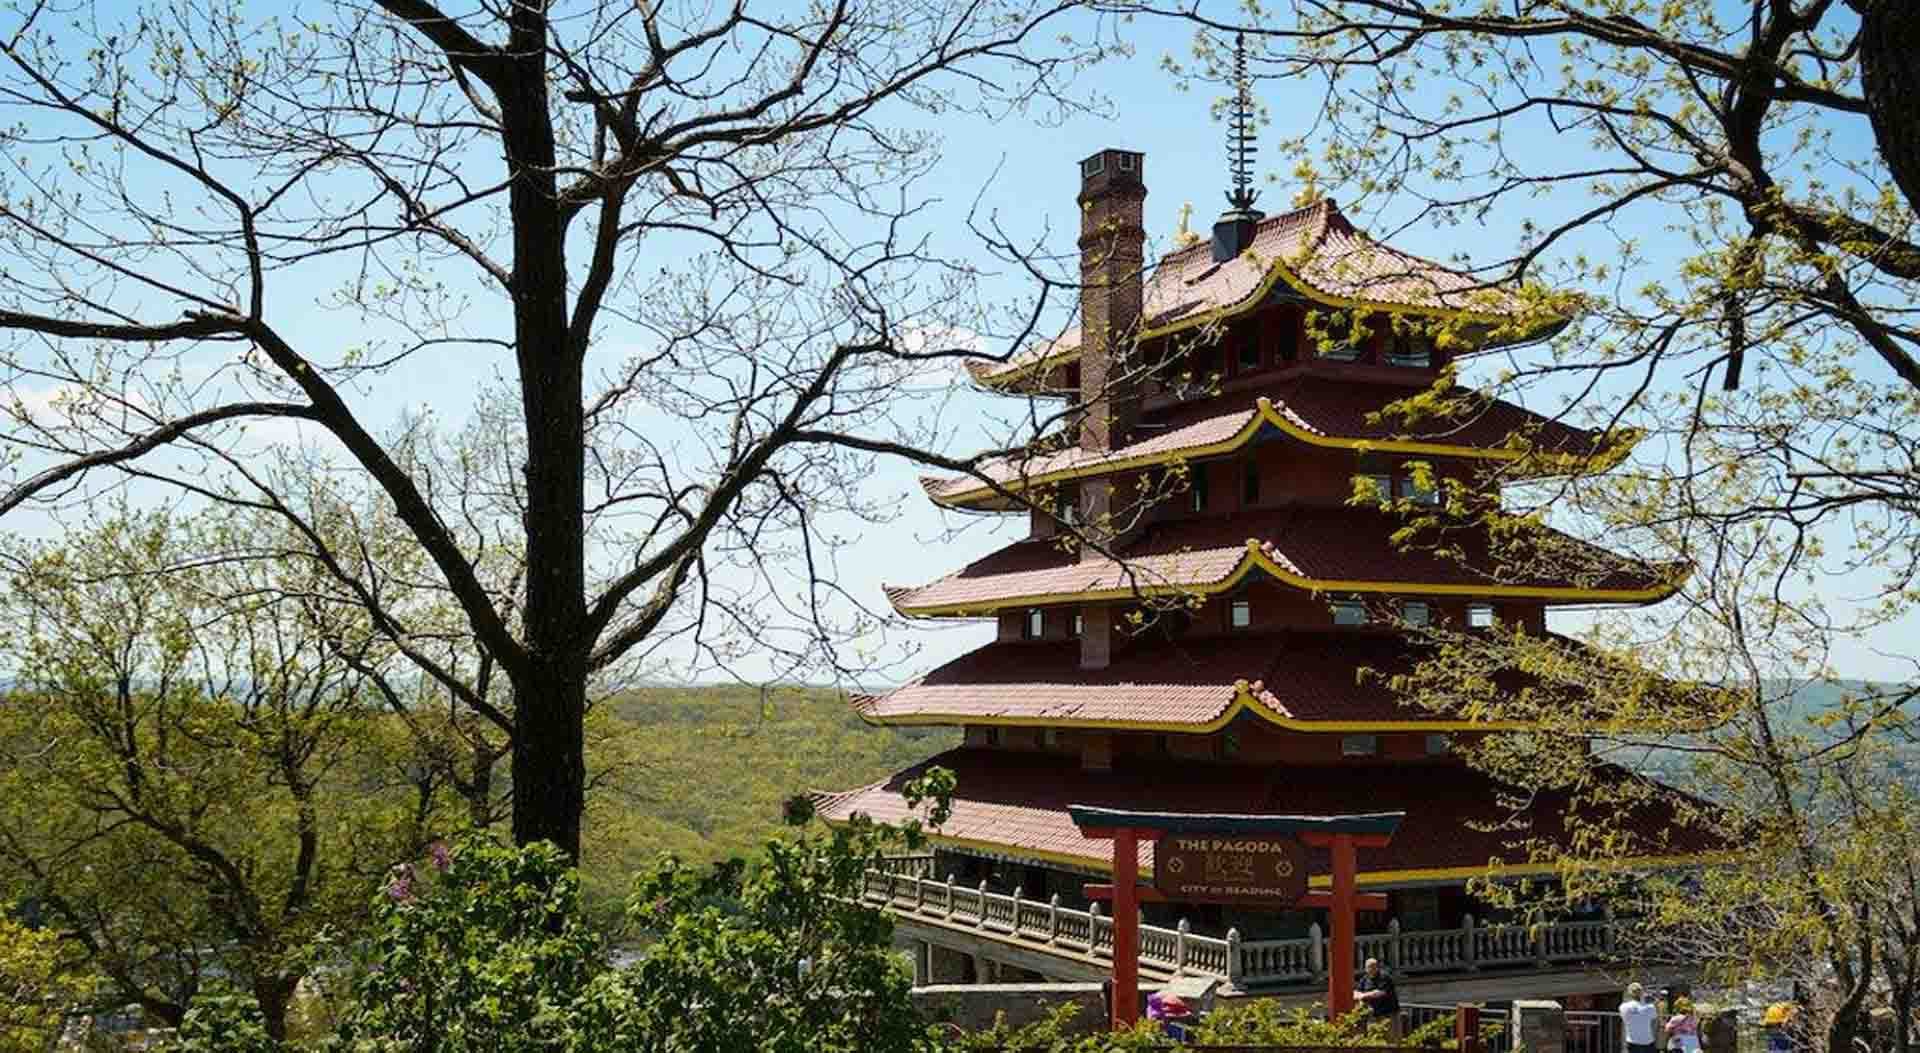 The Pagoda on top of Mount Penn in Reading PA in the spring time with budding trees and blue sky